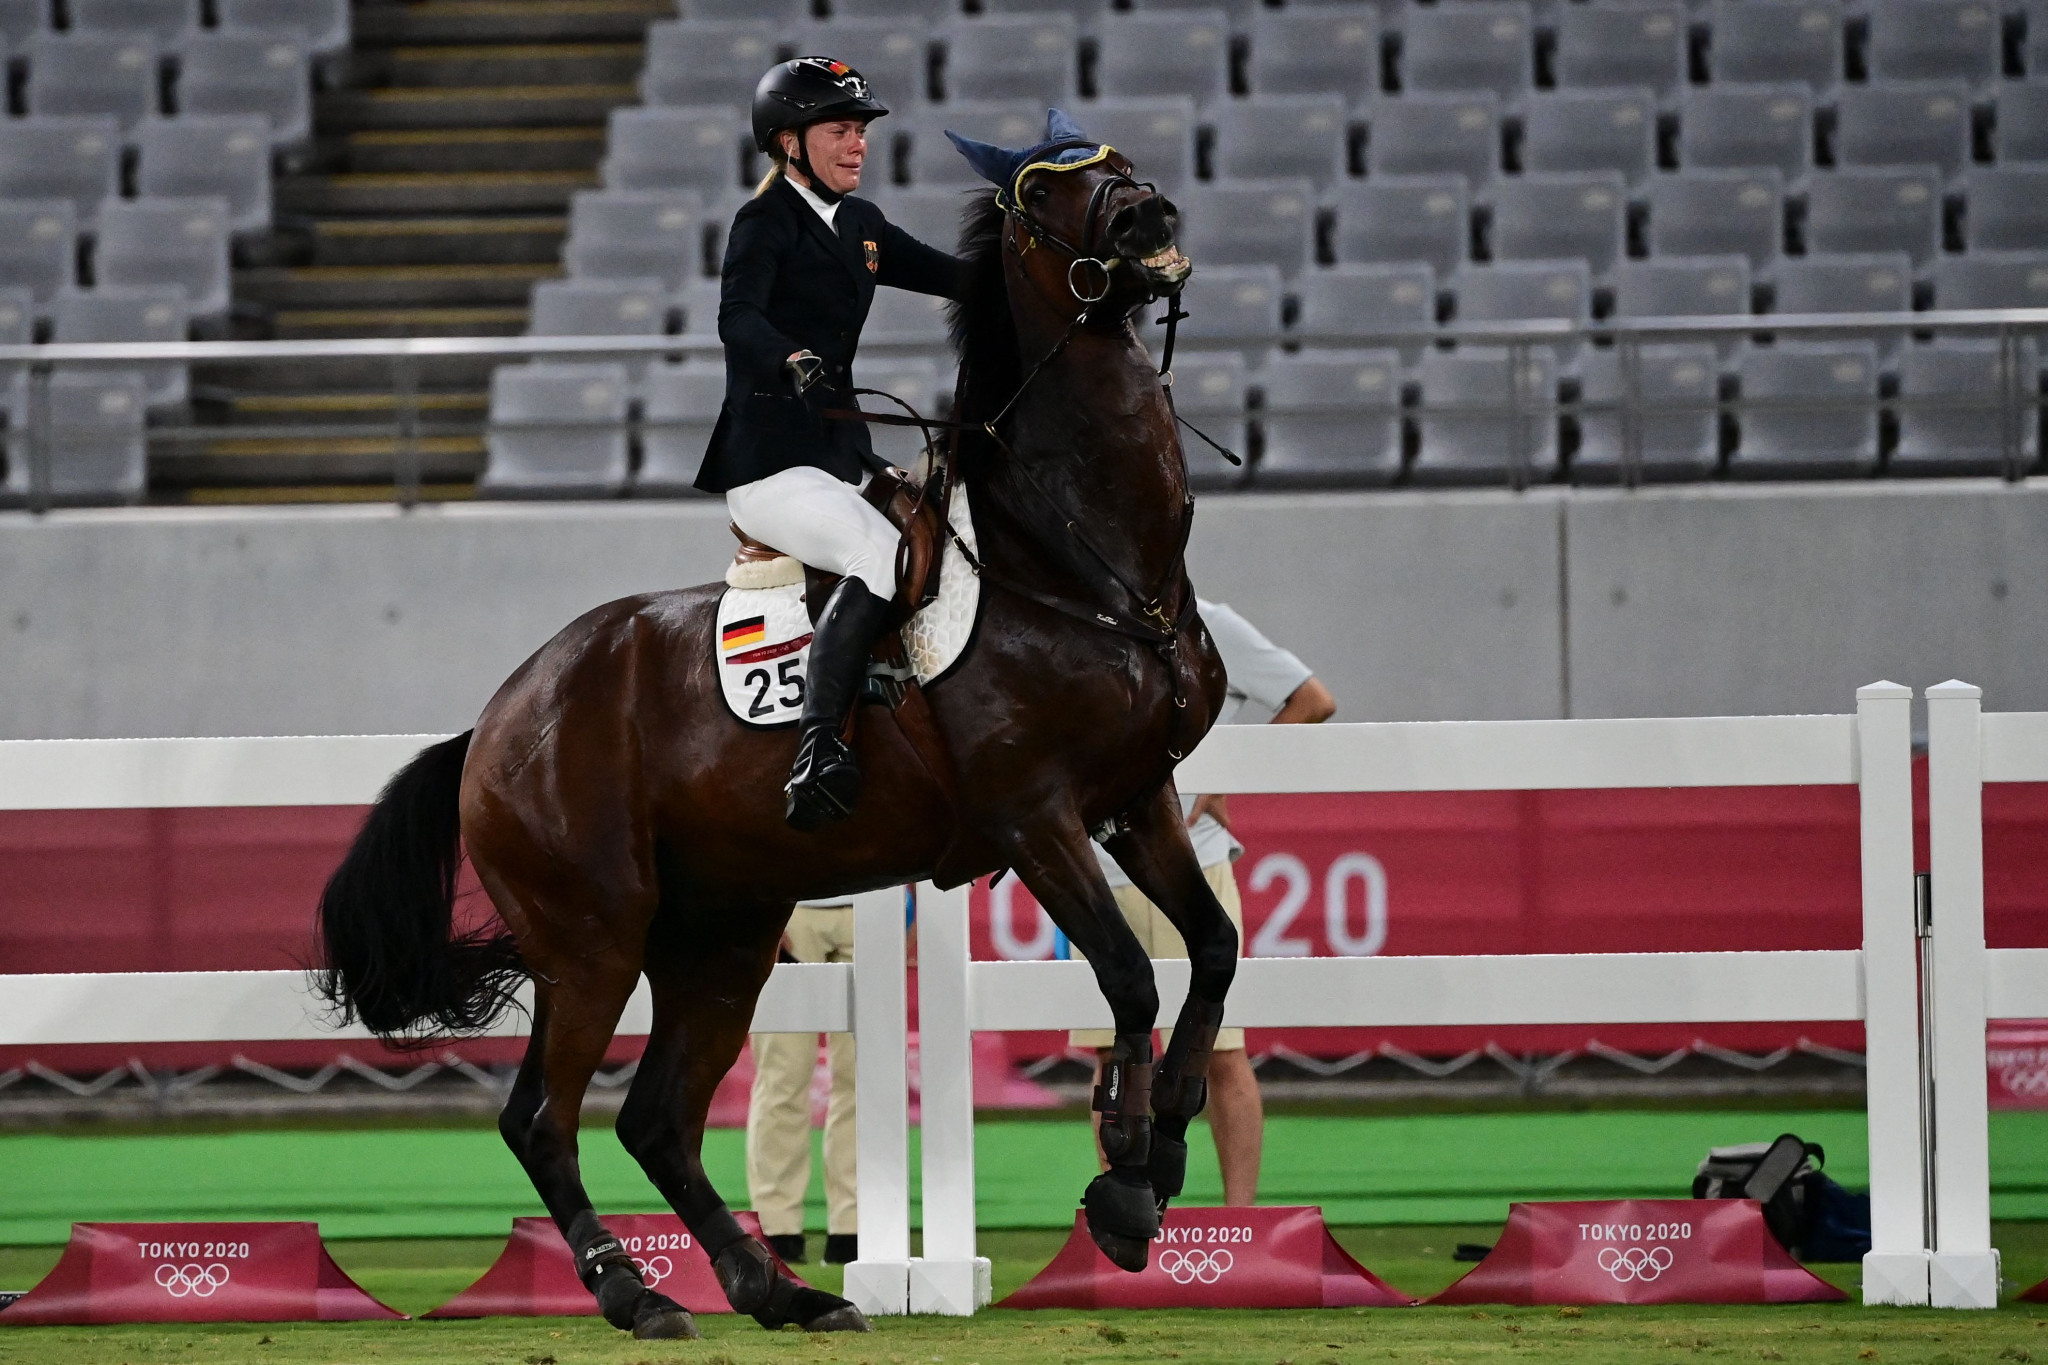 PETA calls on IOC to remove all equestrian events from the Olympics